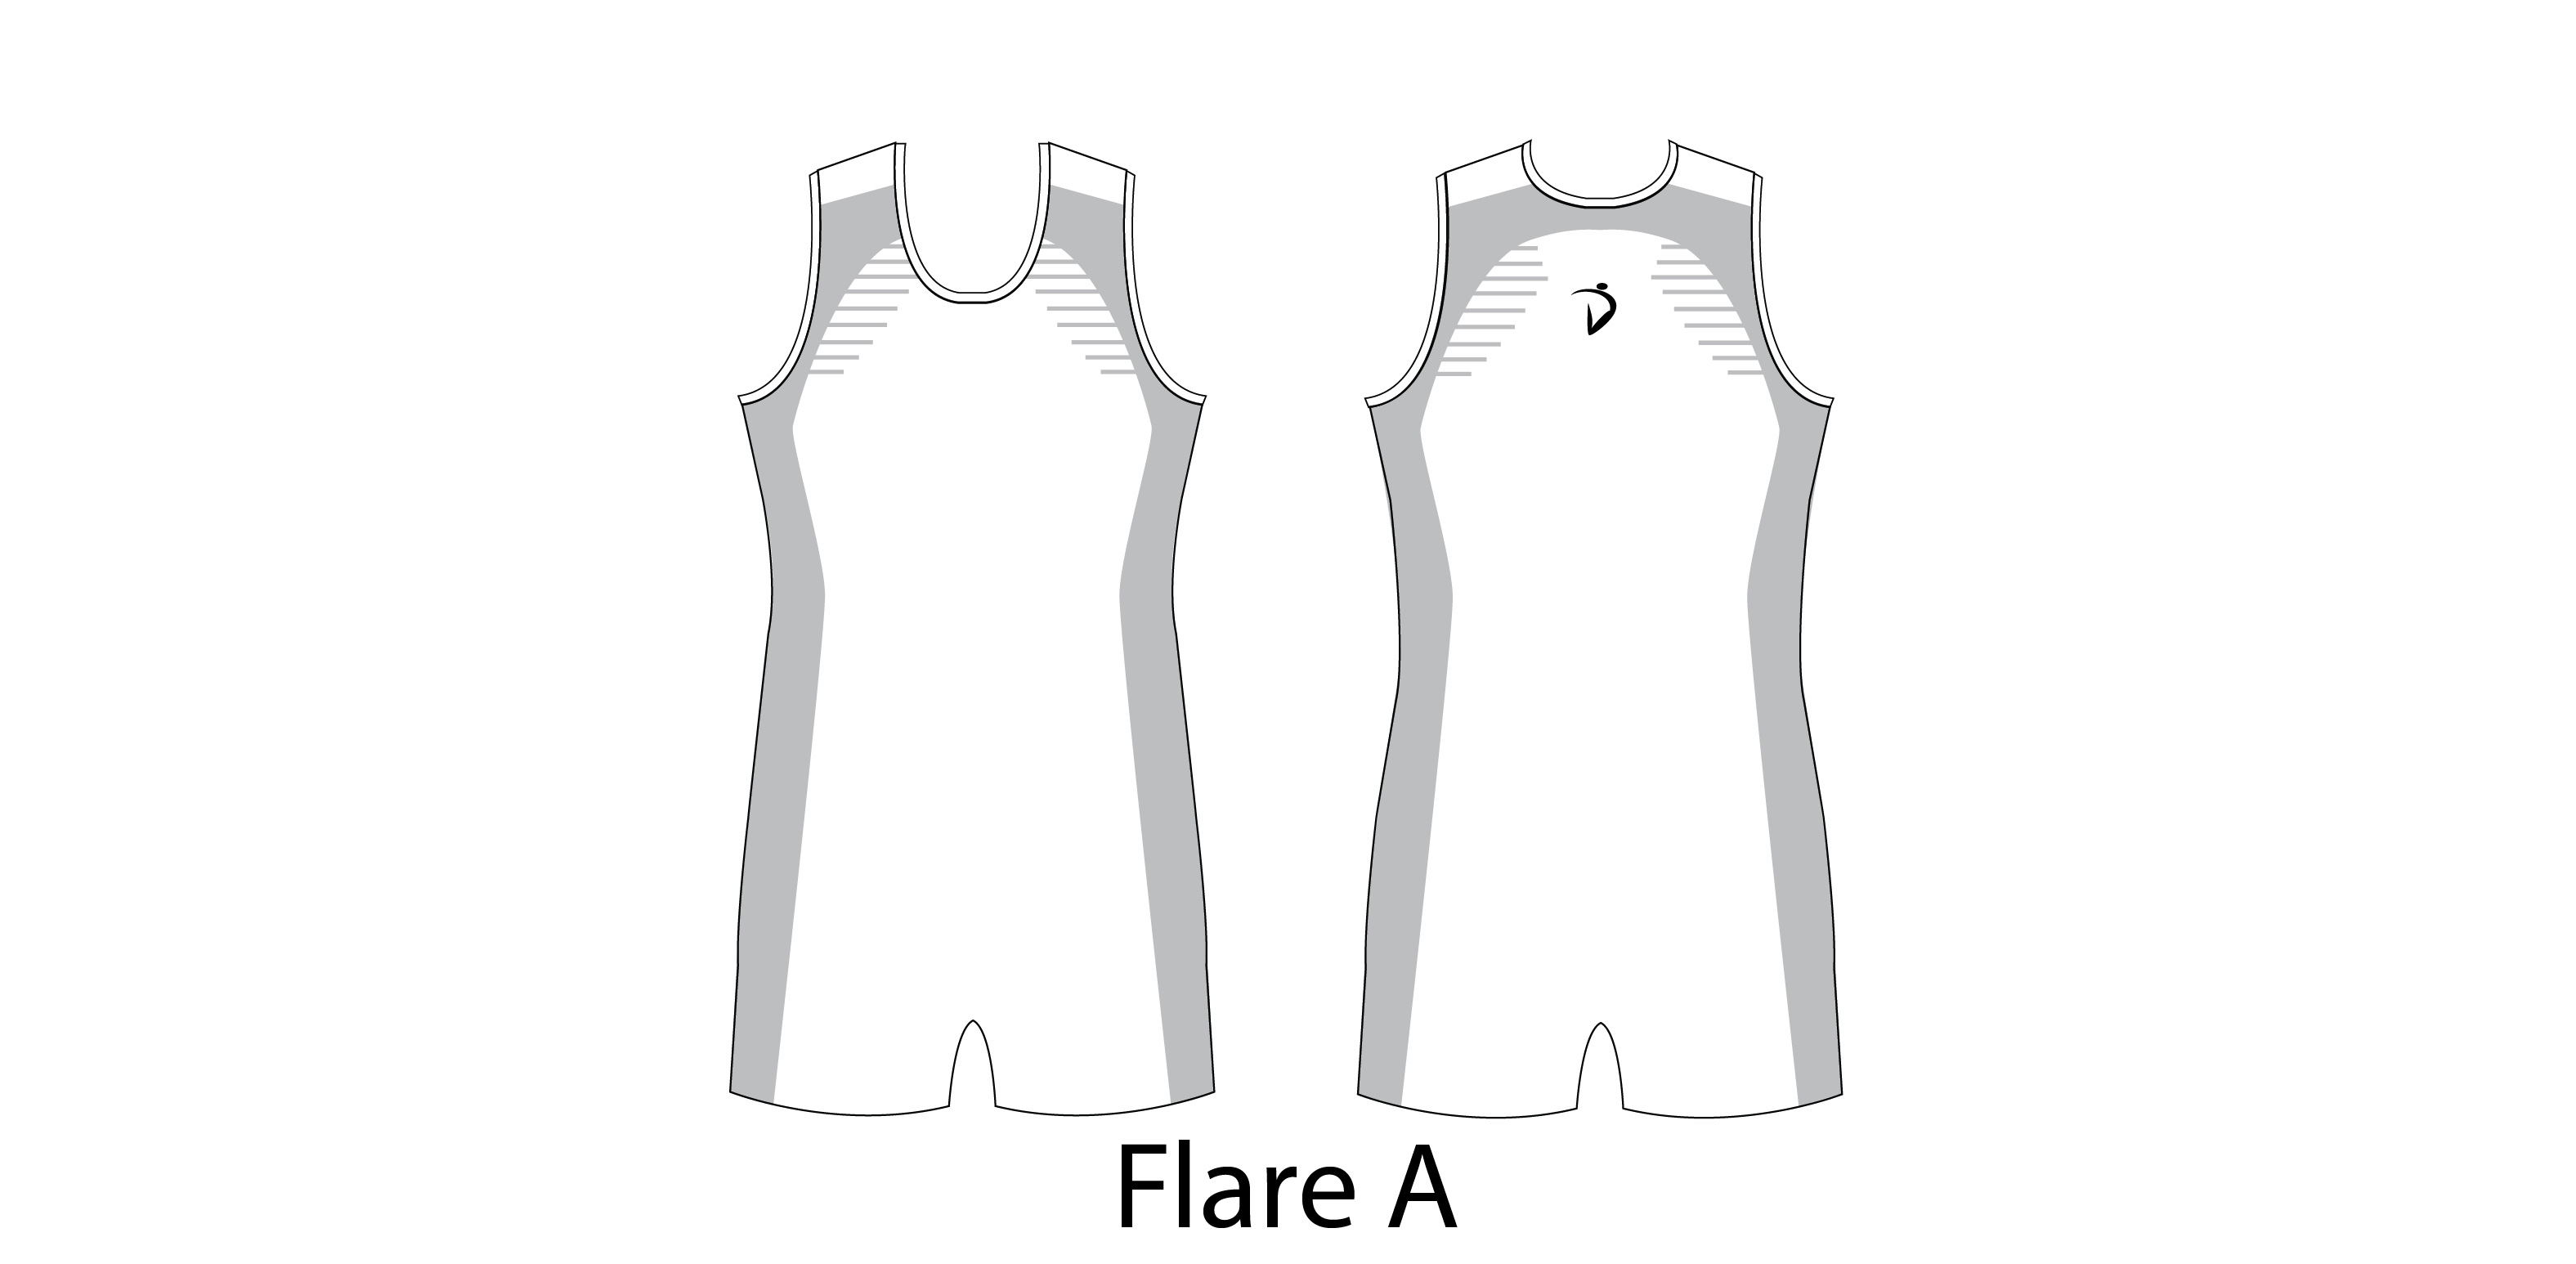 Flare A